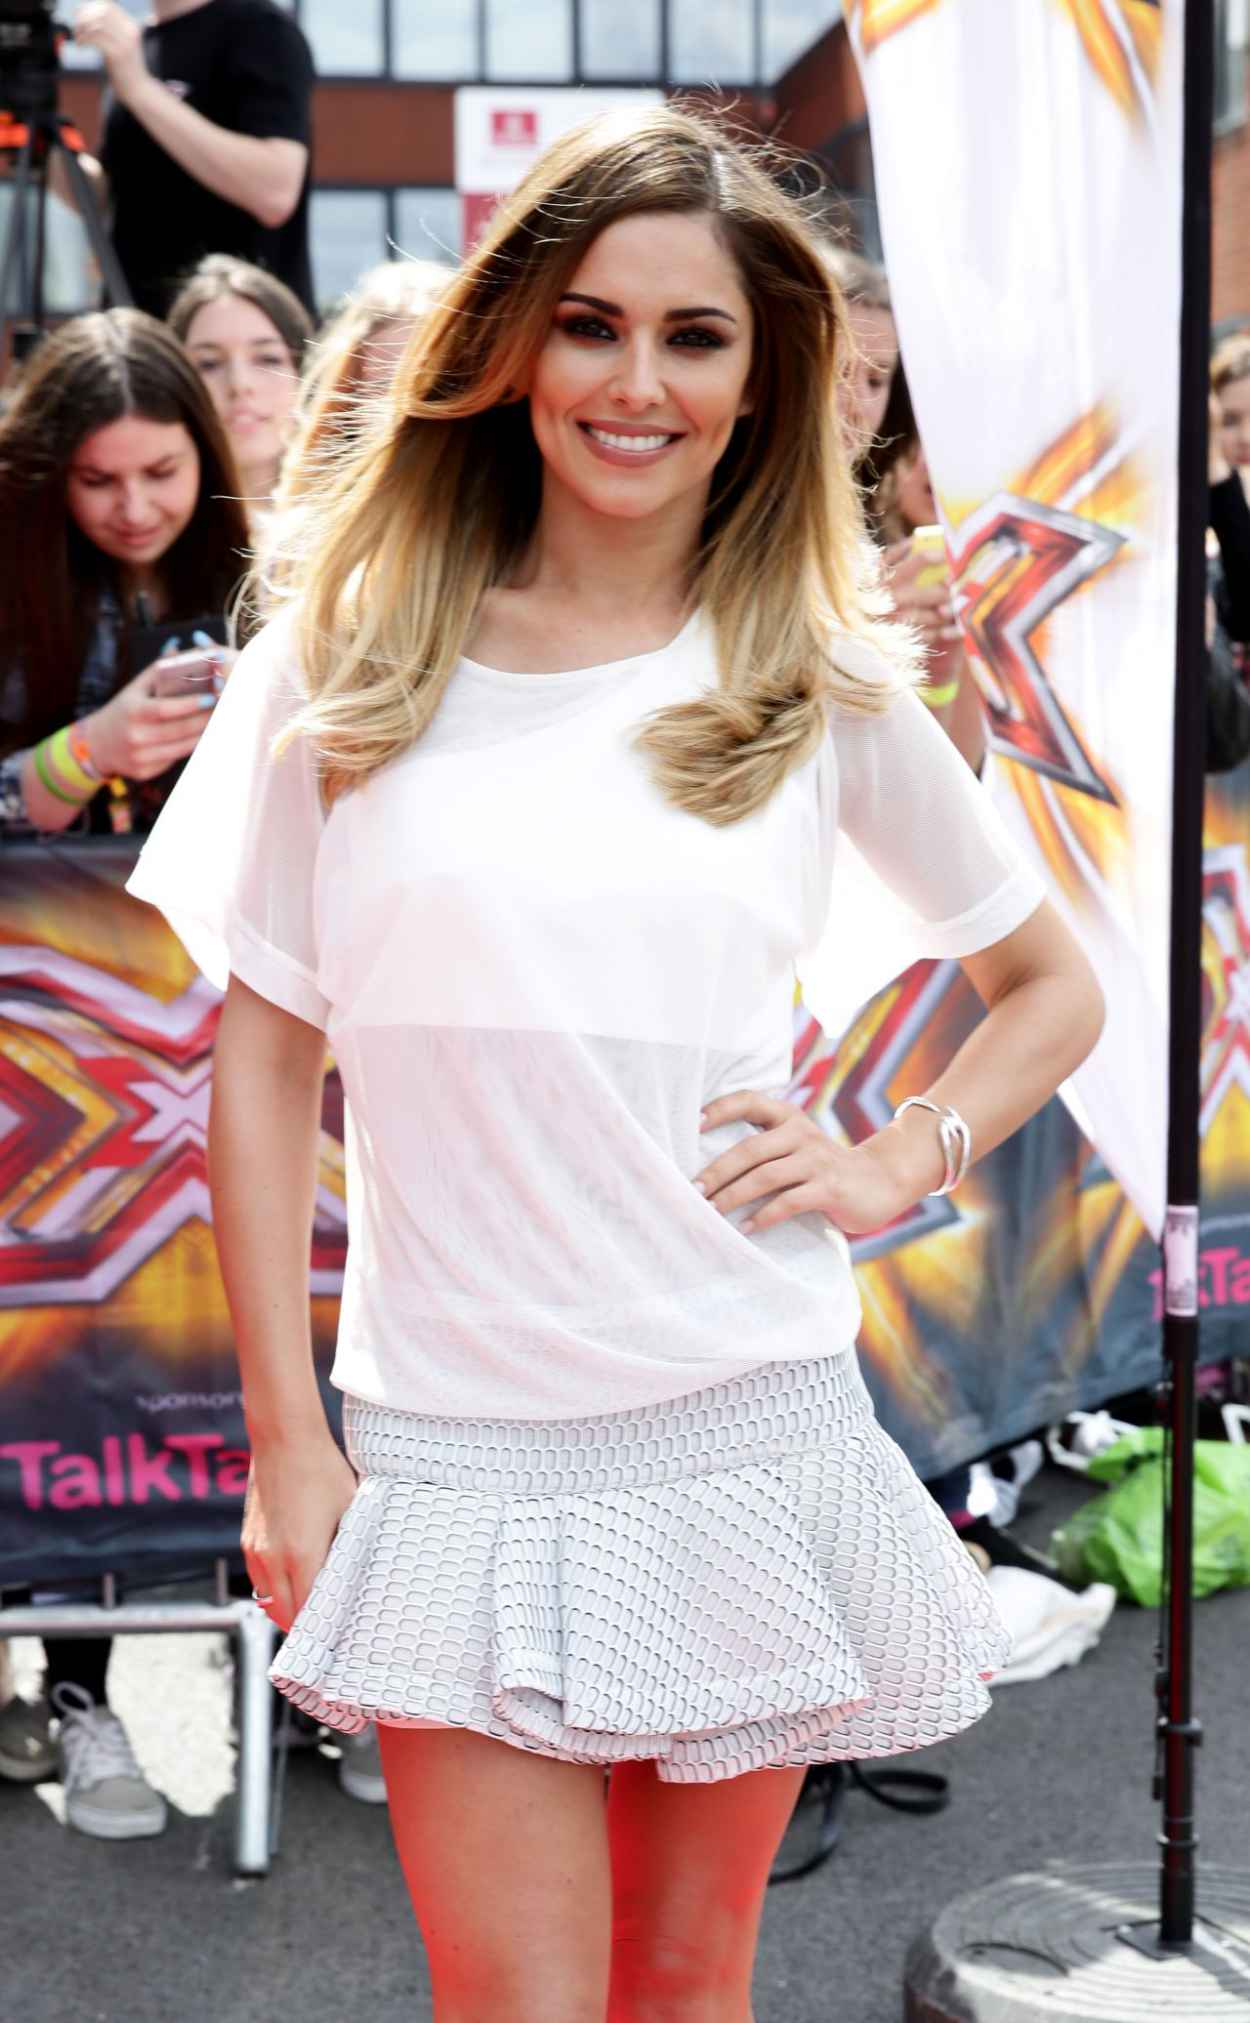 Cheryl Cole Shows off Her Legs - X Factor Auditions in Manchester - June 2015-1